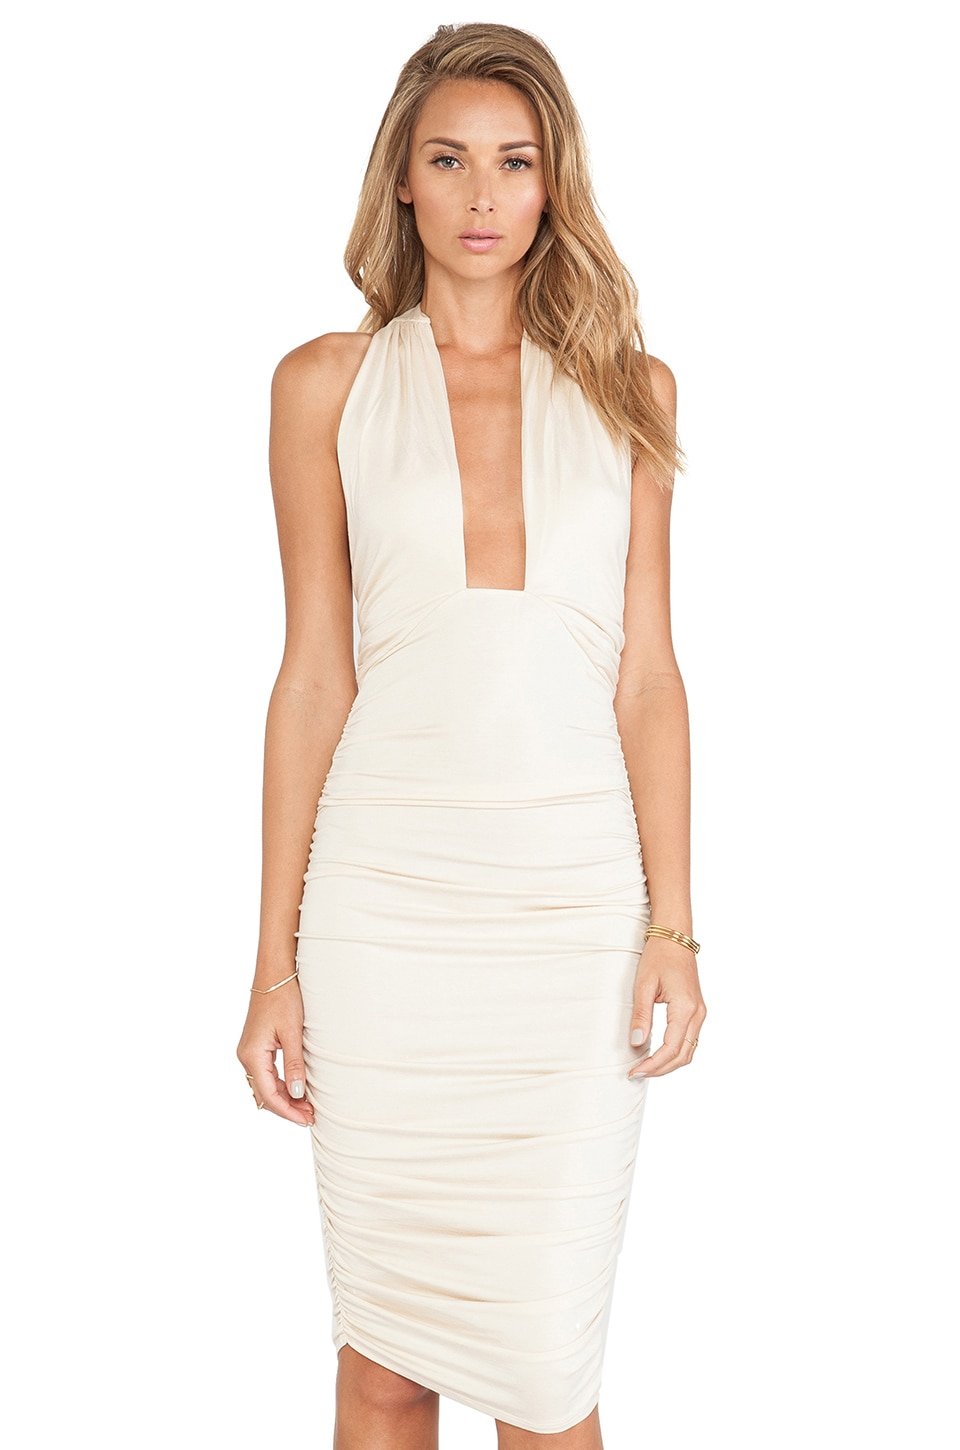 Rachel Pally Shawnee Dress in Cream